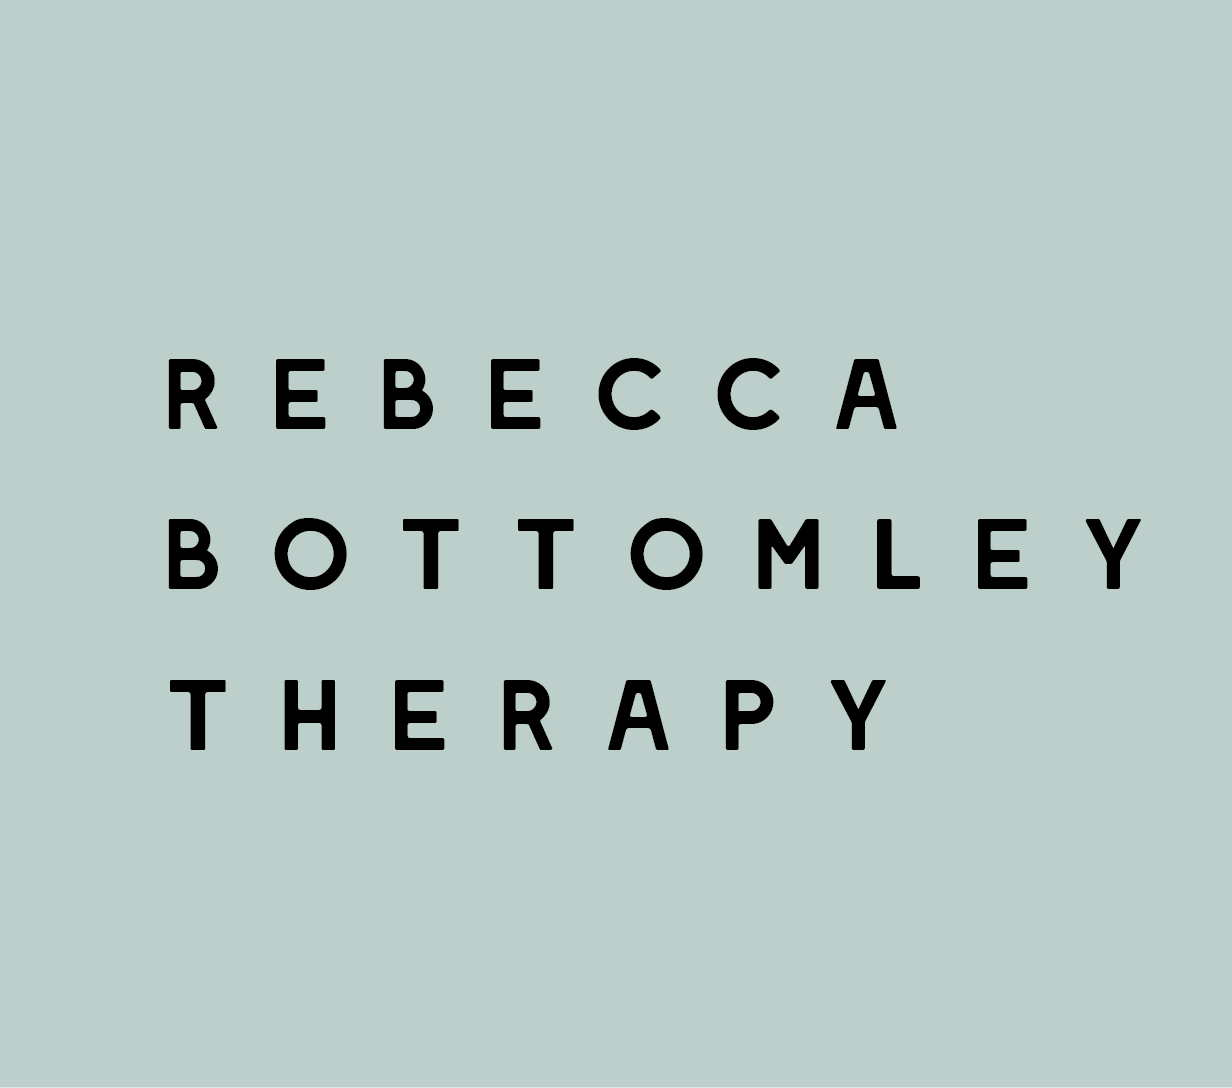 Rebecca Bottomley Therapy